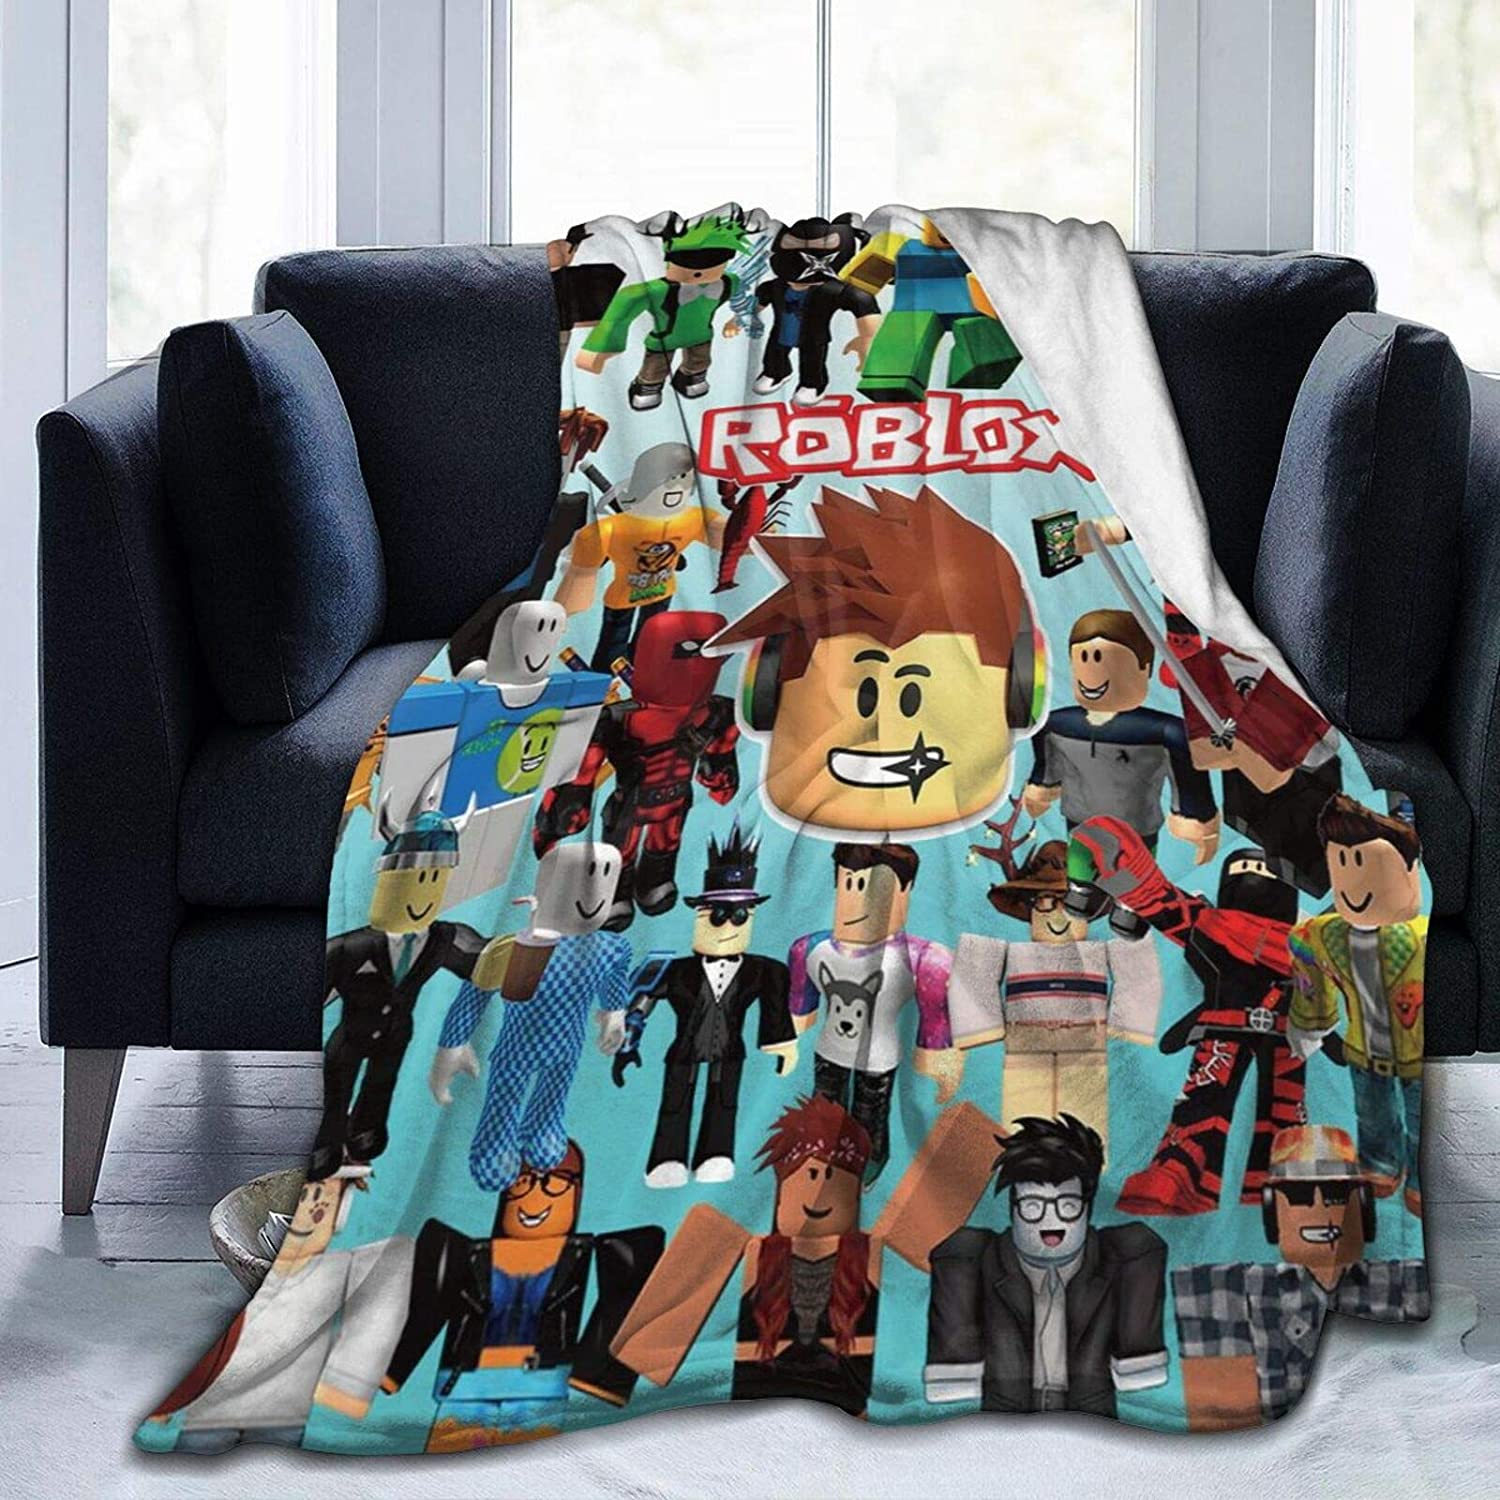 """Suguroo R-Oblox Home Fleece Throw Blankets for Couch Bed Sofa Cozy Warm Ultra-Soft Blanket 50"""" x40"""""""